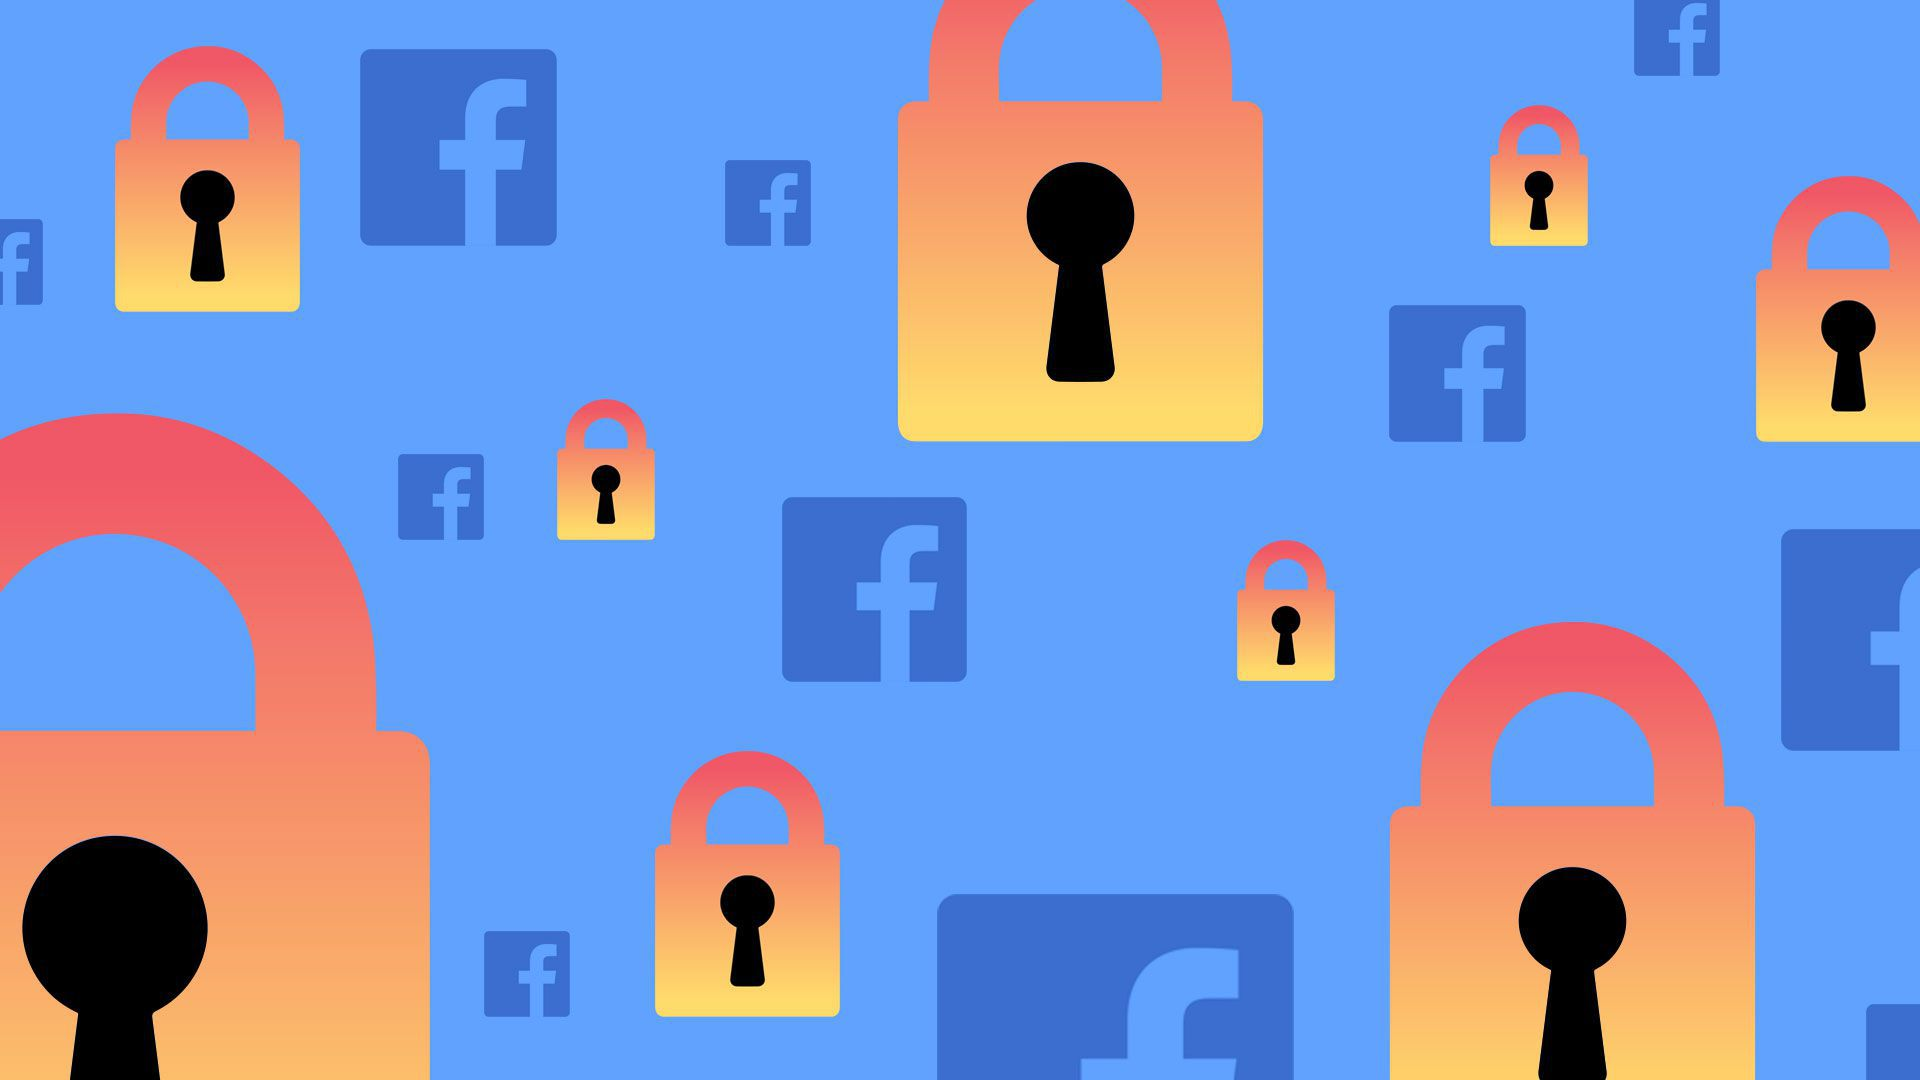 An illustration of the Facebook logo and padlocks representing security.